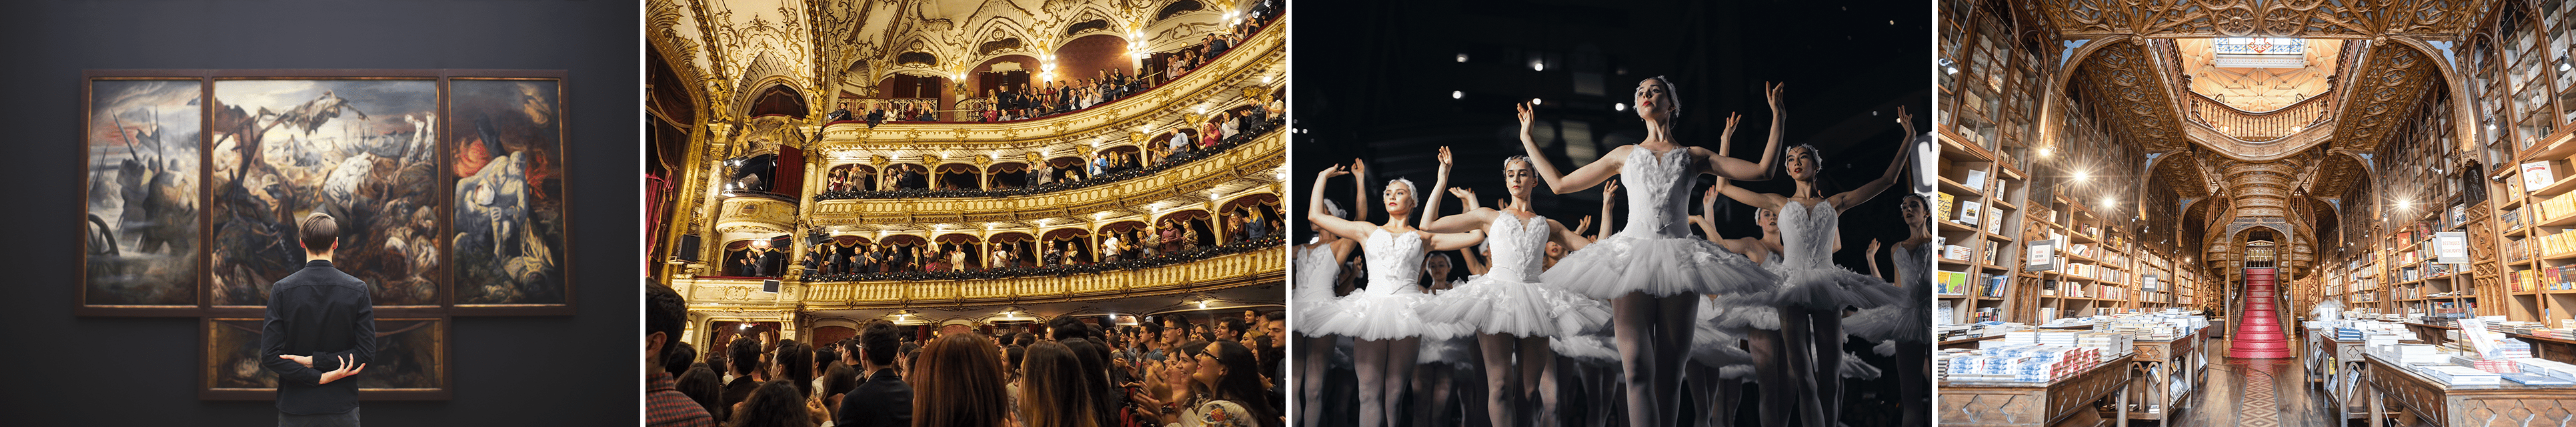 4 images that include a man looking at a painting in a museum, people in a theater watching a performance, a group of ballerinas on stage, and an interior of Livraria Lello, a beautiful bookshop in Portugal